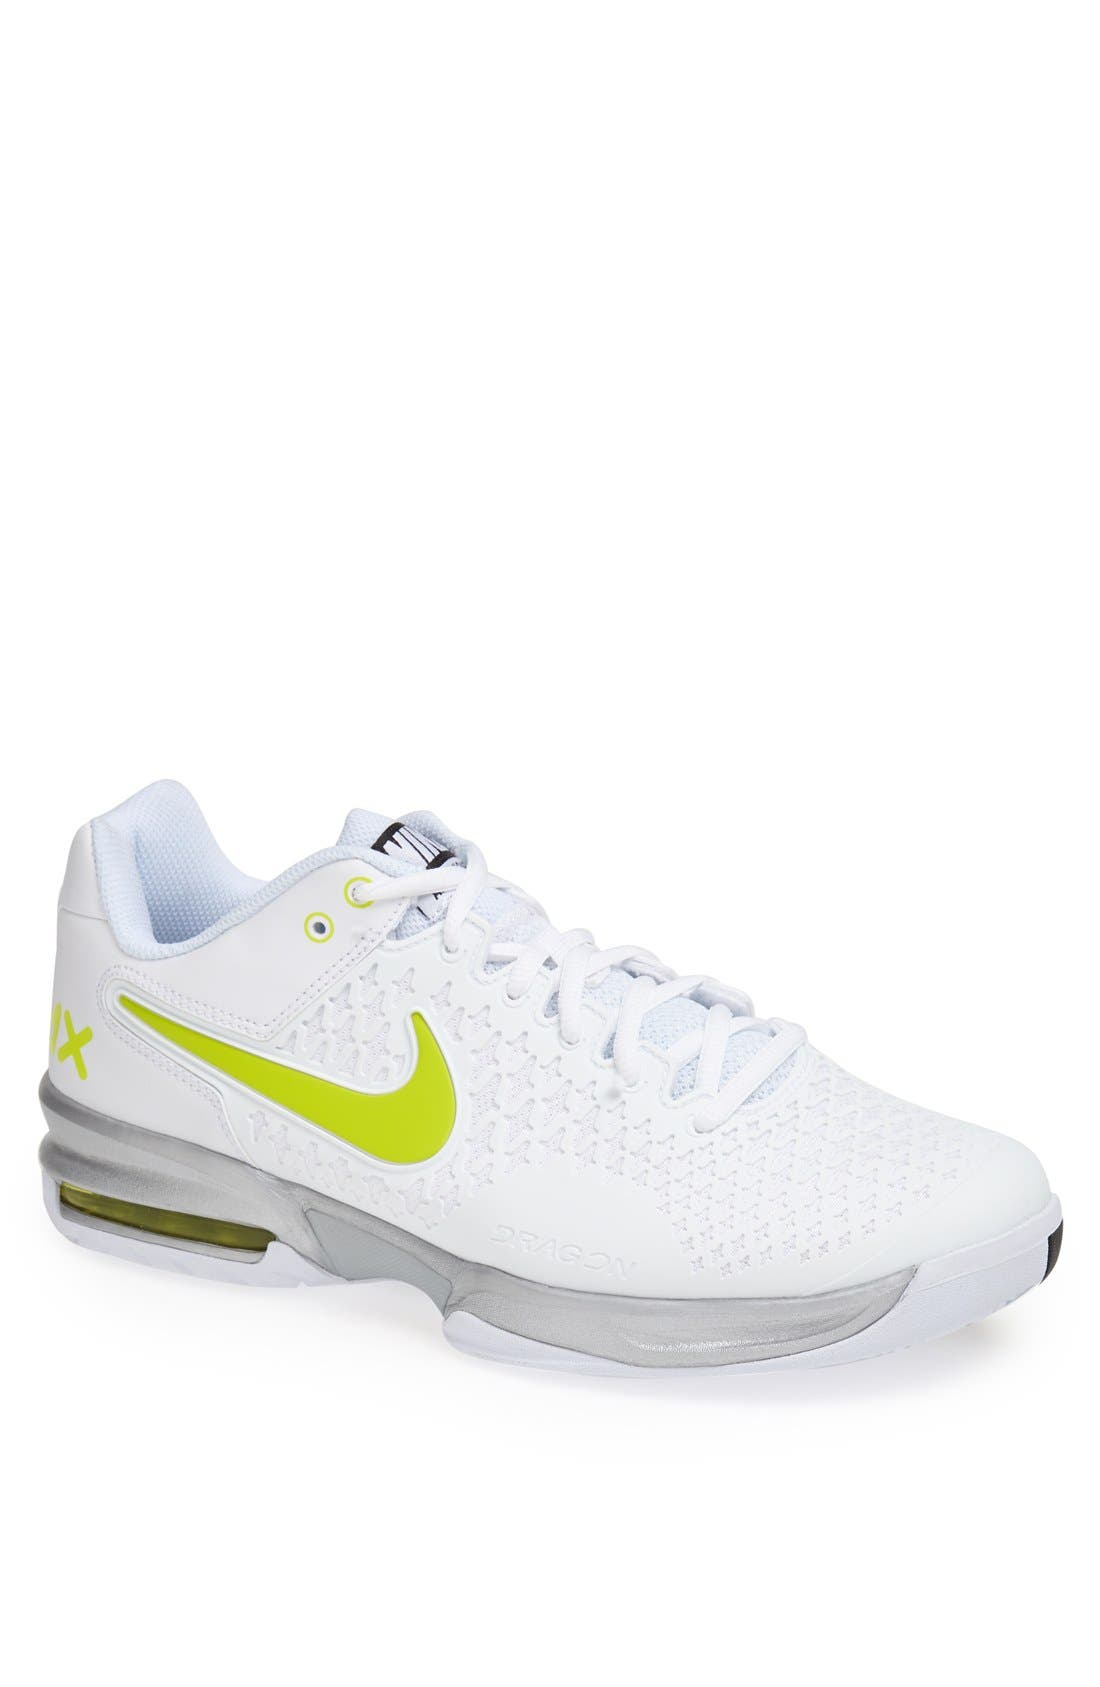 Alternate Image 1 Selected - Nike 'Air Max Cage' Tennis Shoe (Men)